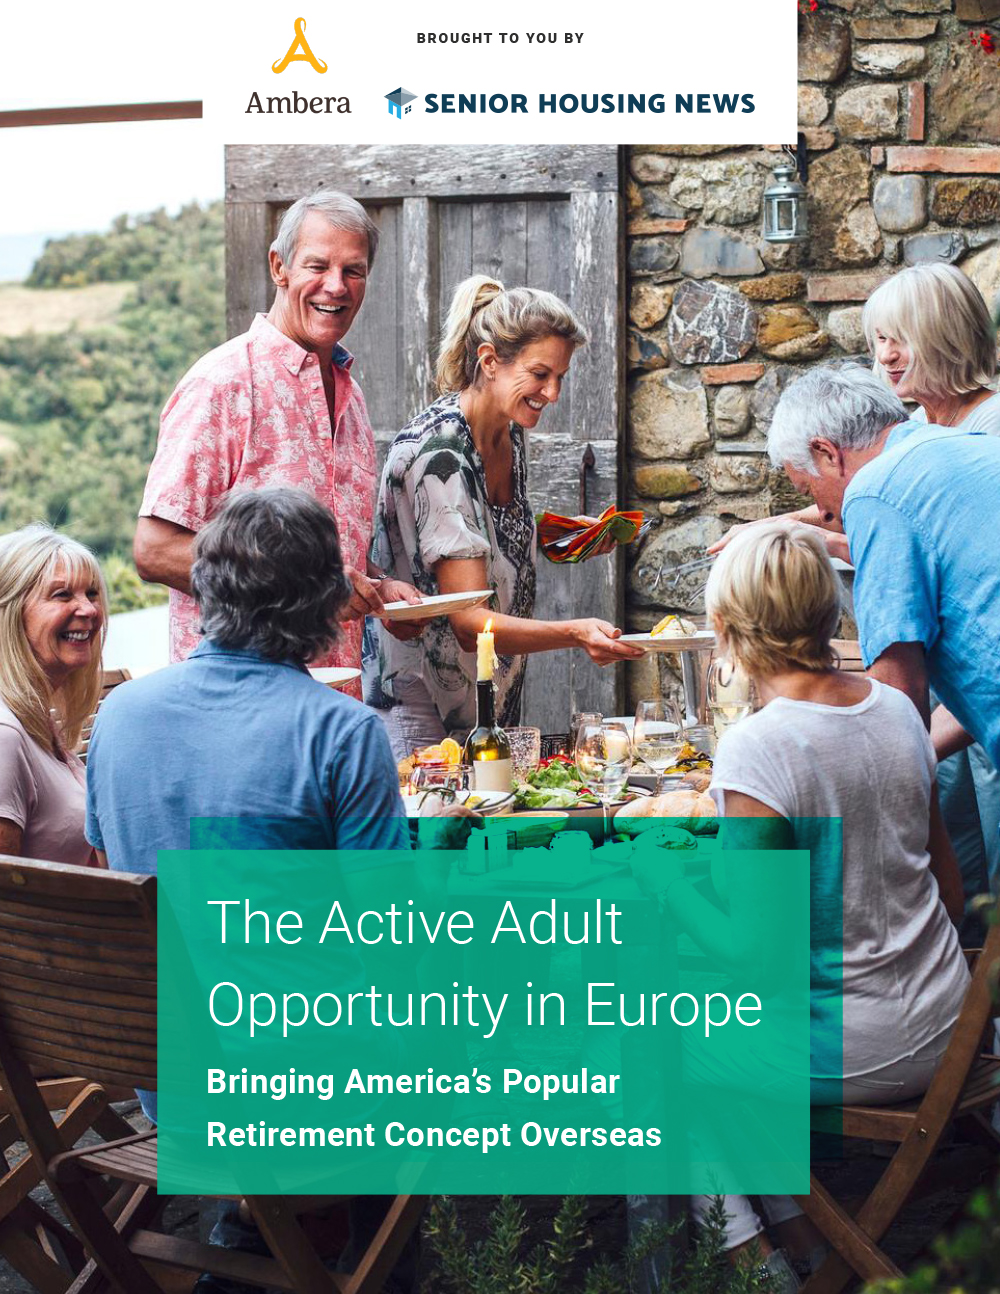 The Active Adult Opportunity in Europe